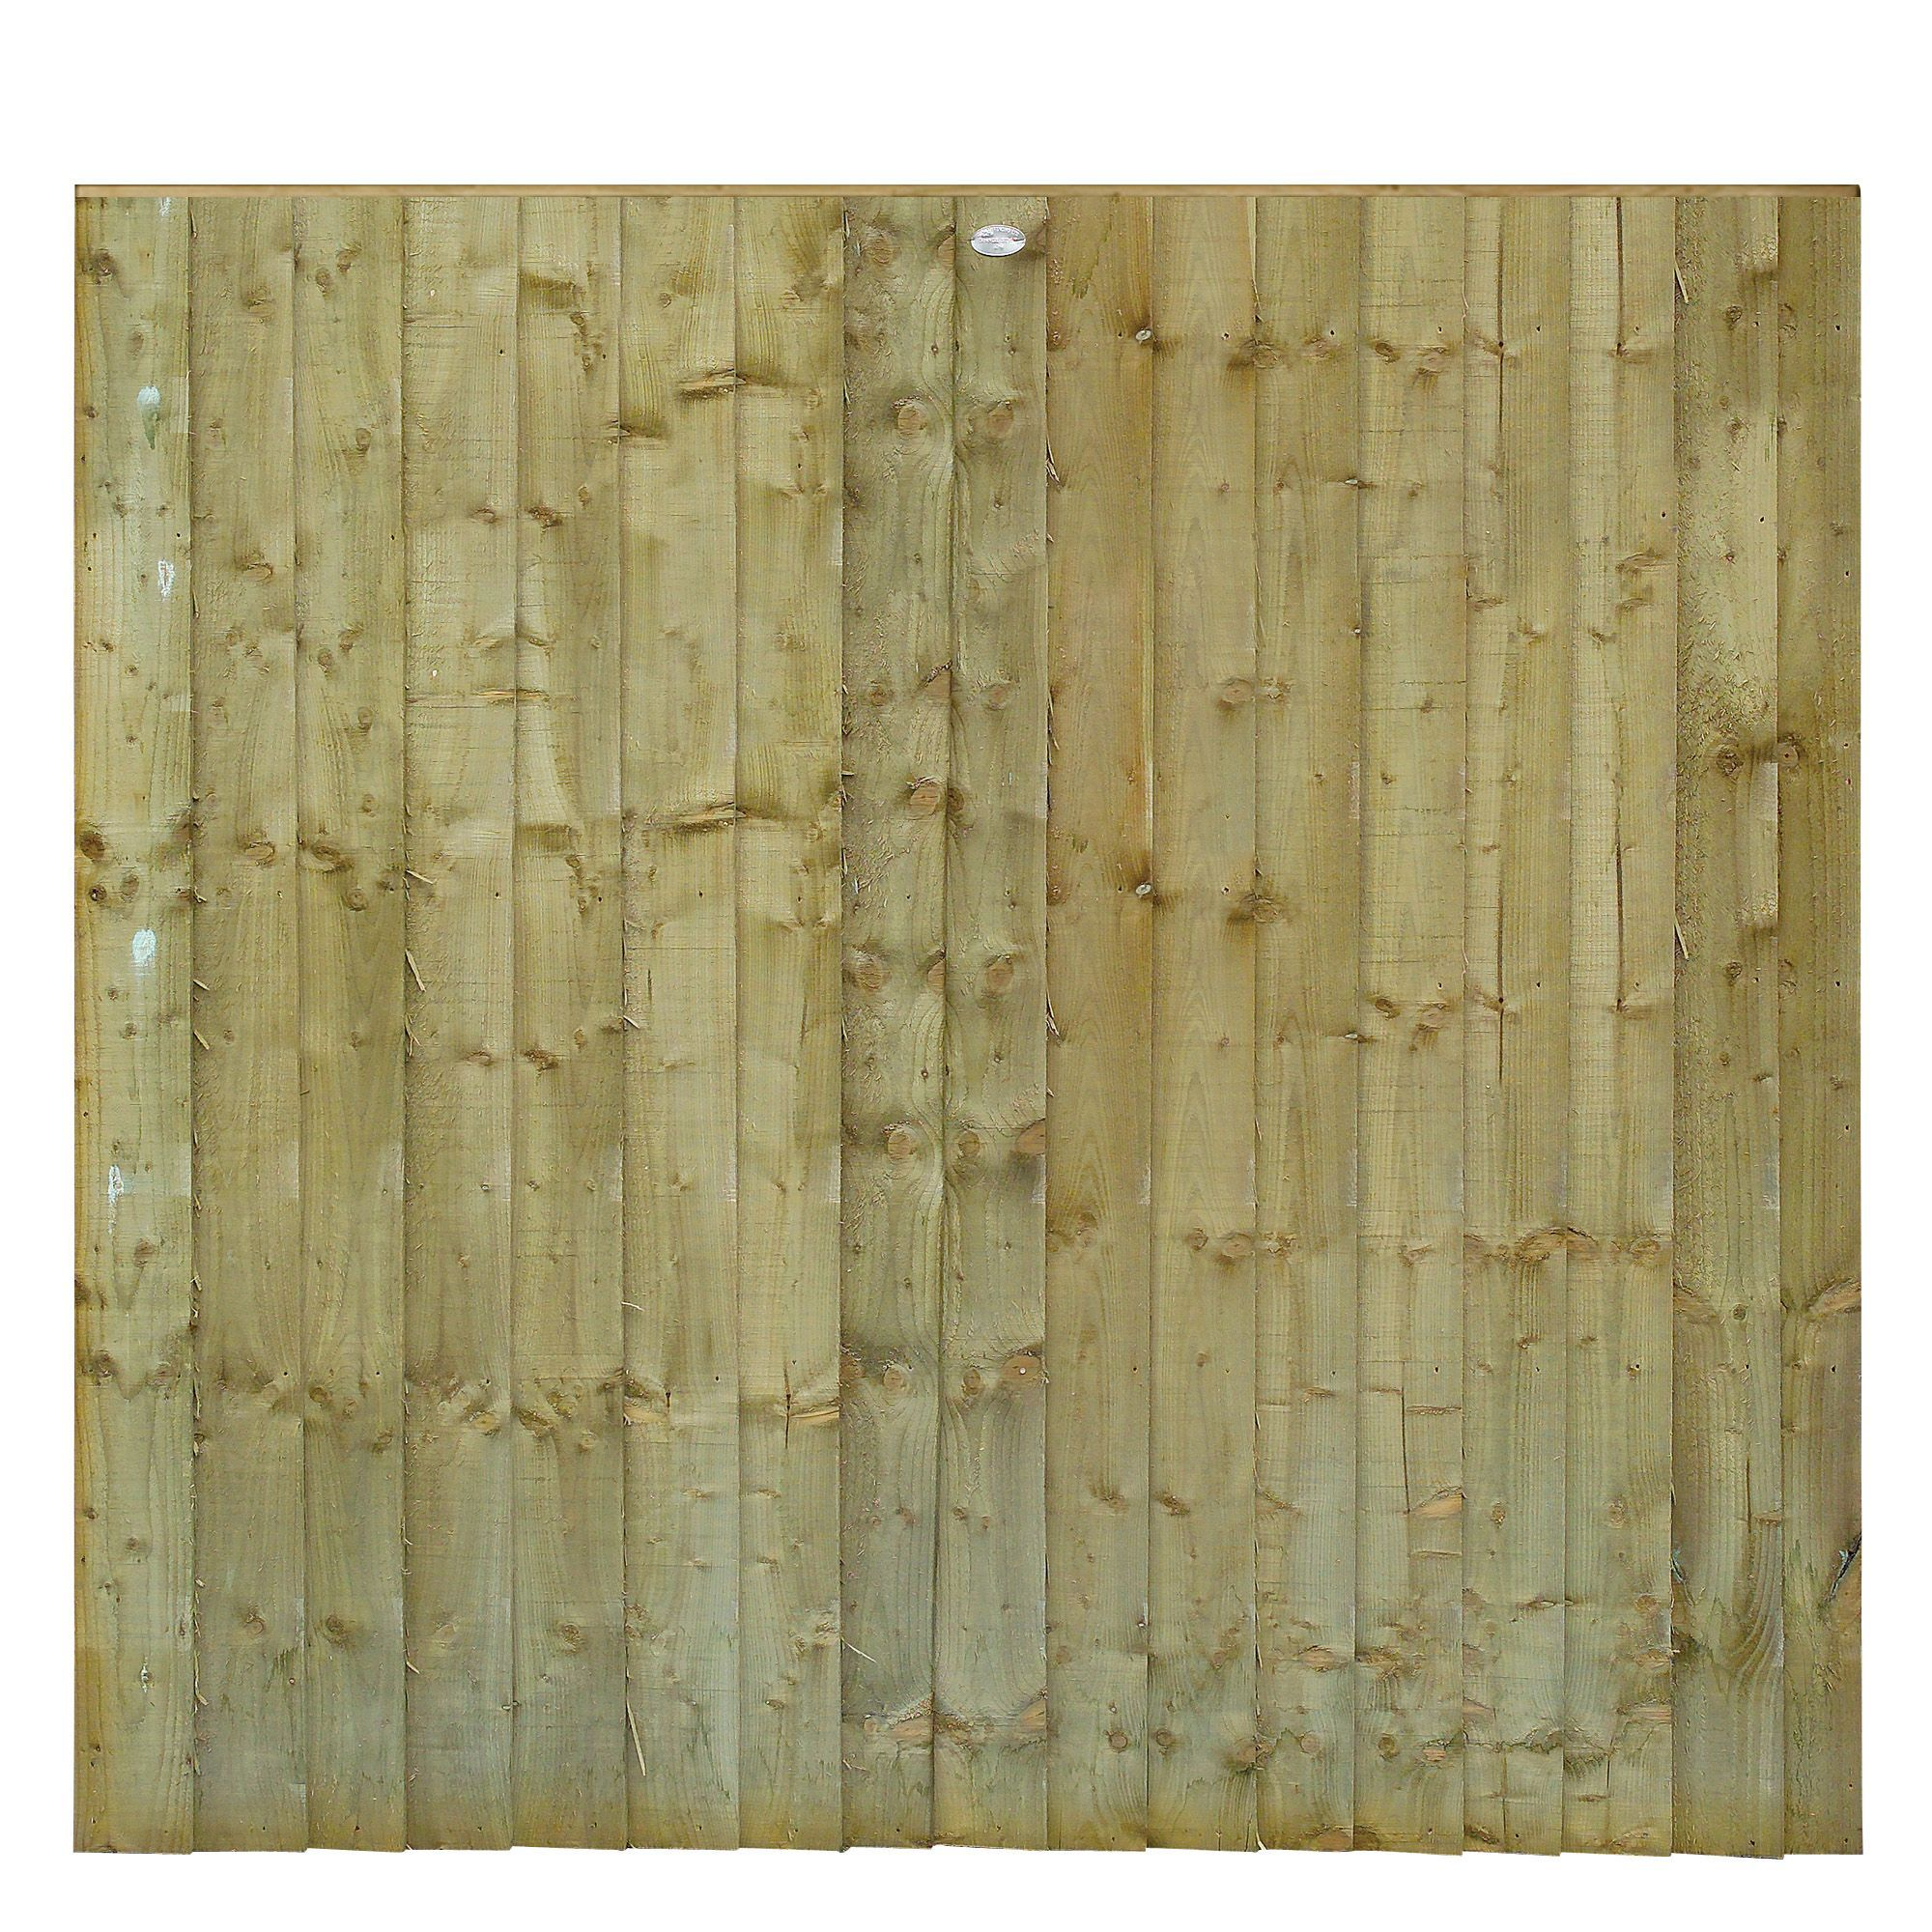 Grange Professional Feather Edge Overlap Vertical Slat Fence Panel (w)1.83 M (h)1.8m, Pack Of 5